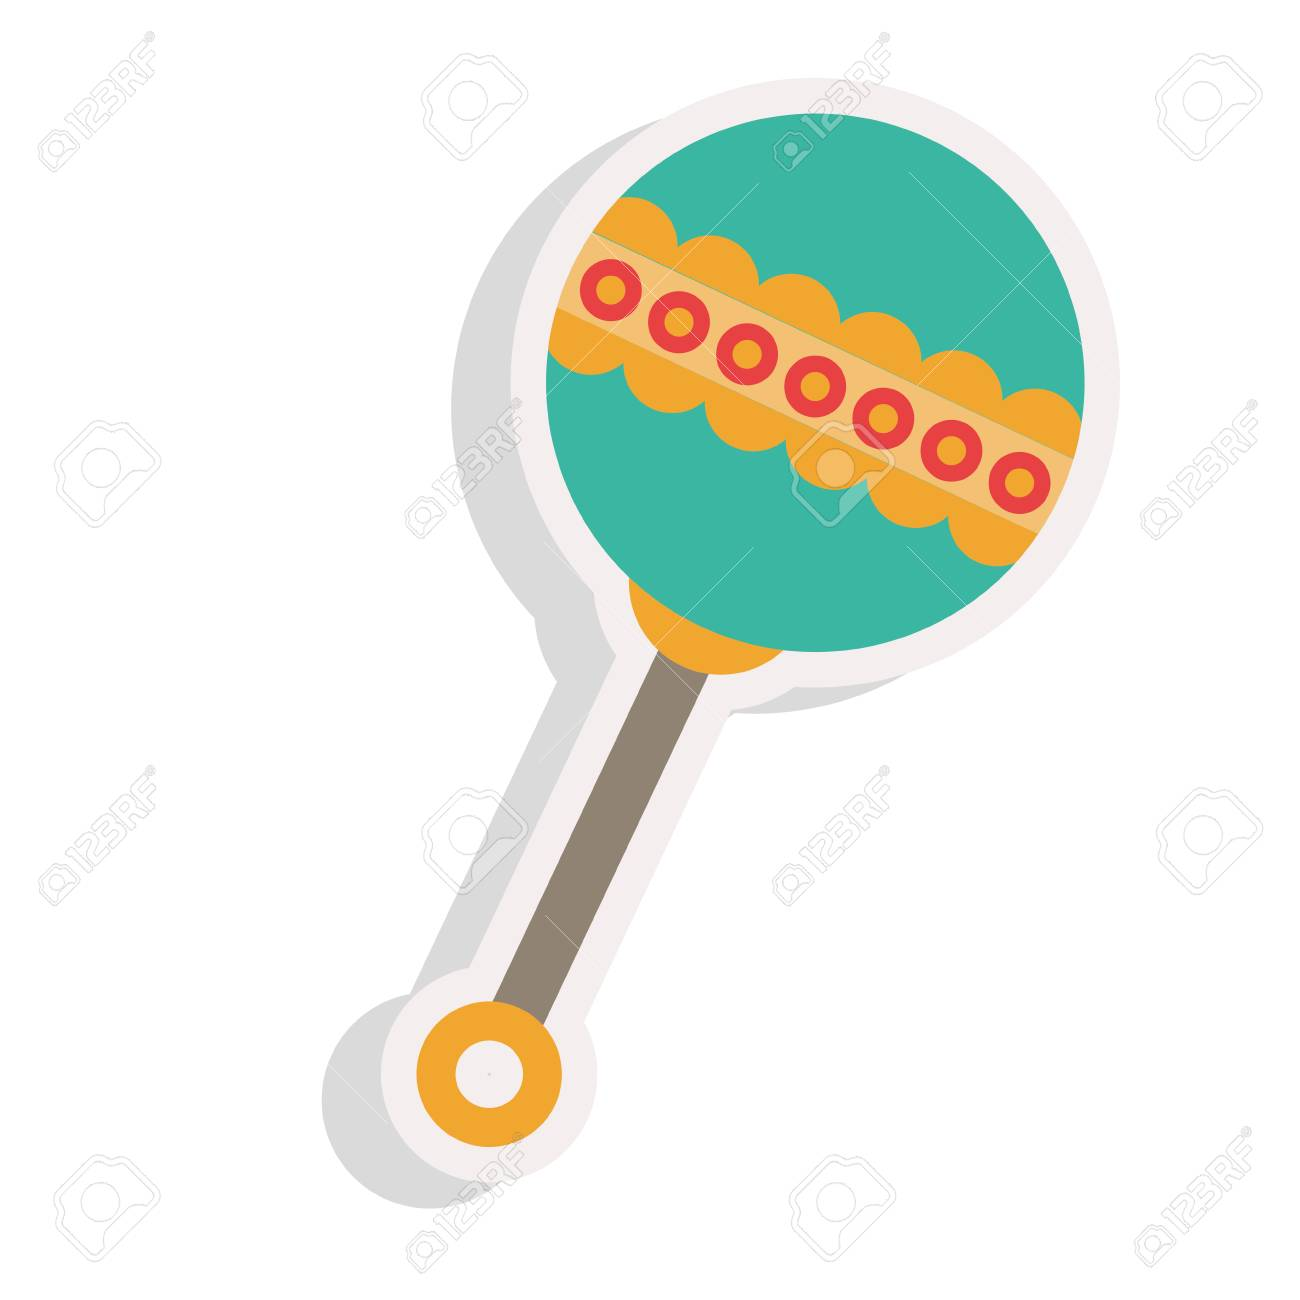 baby rattle toy icon over white background colorful design